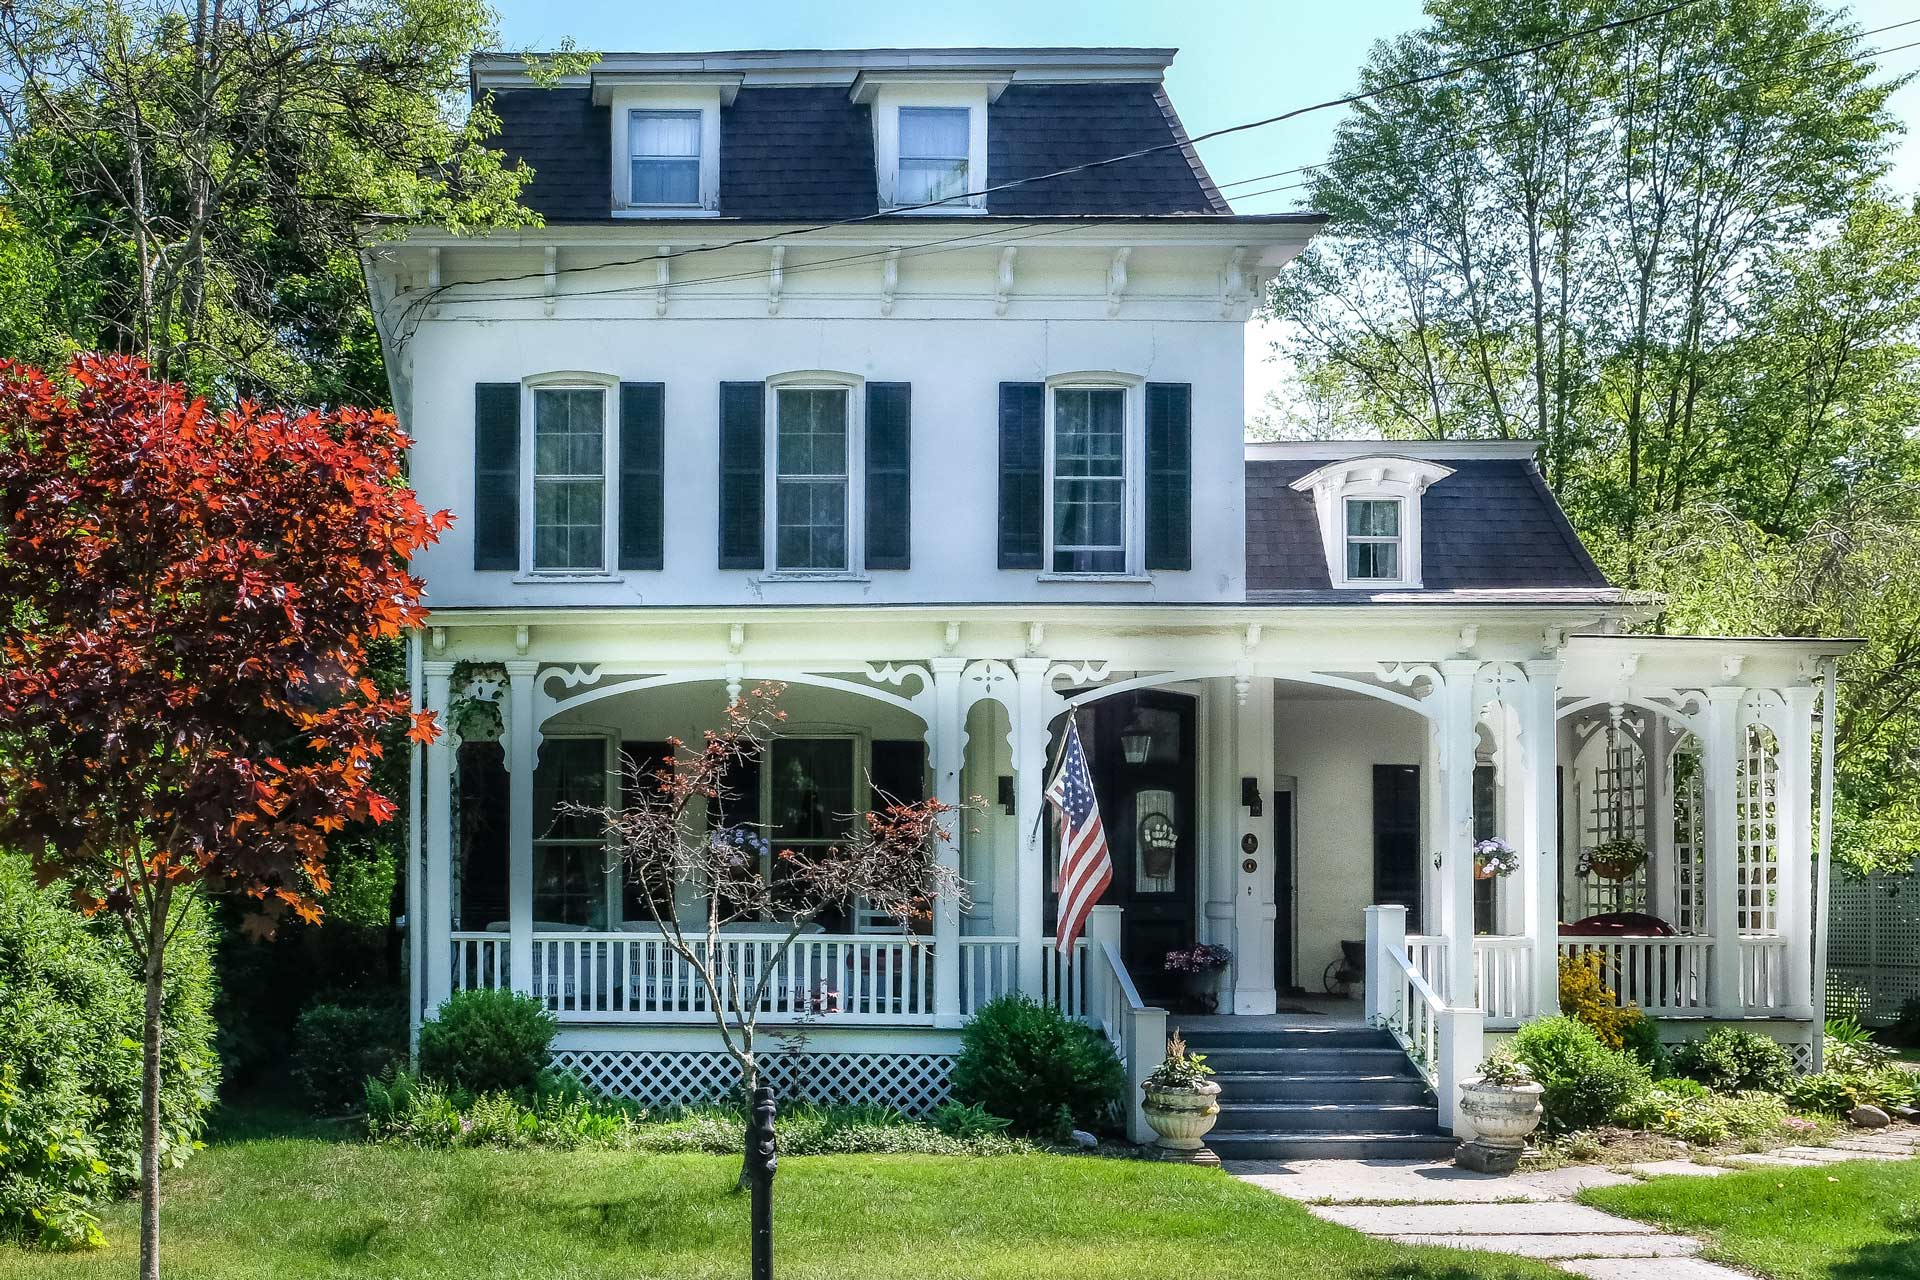 large old white house with black trim and large porch